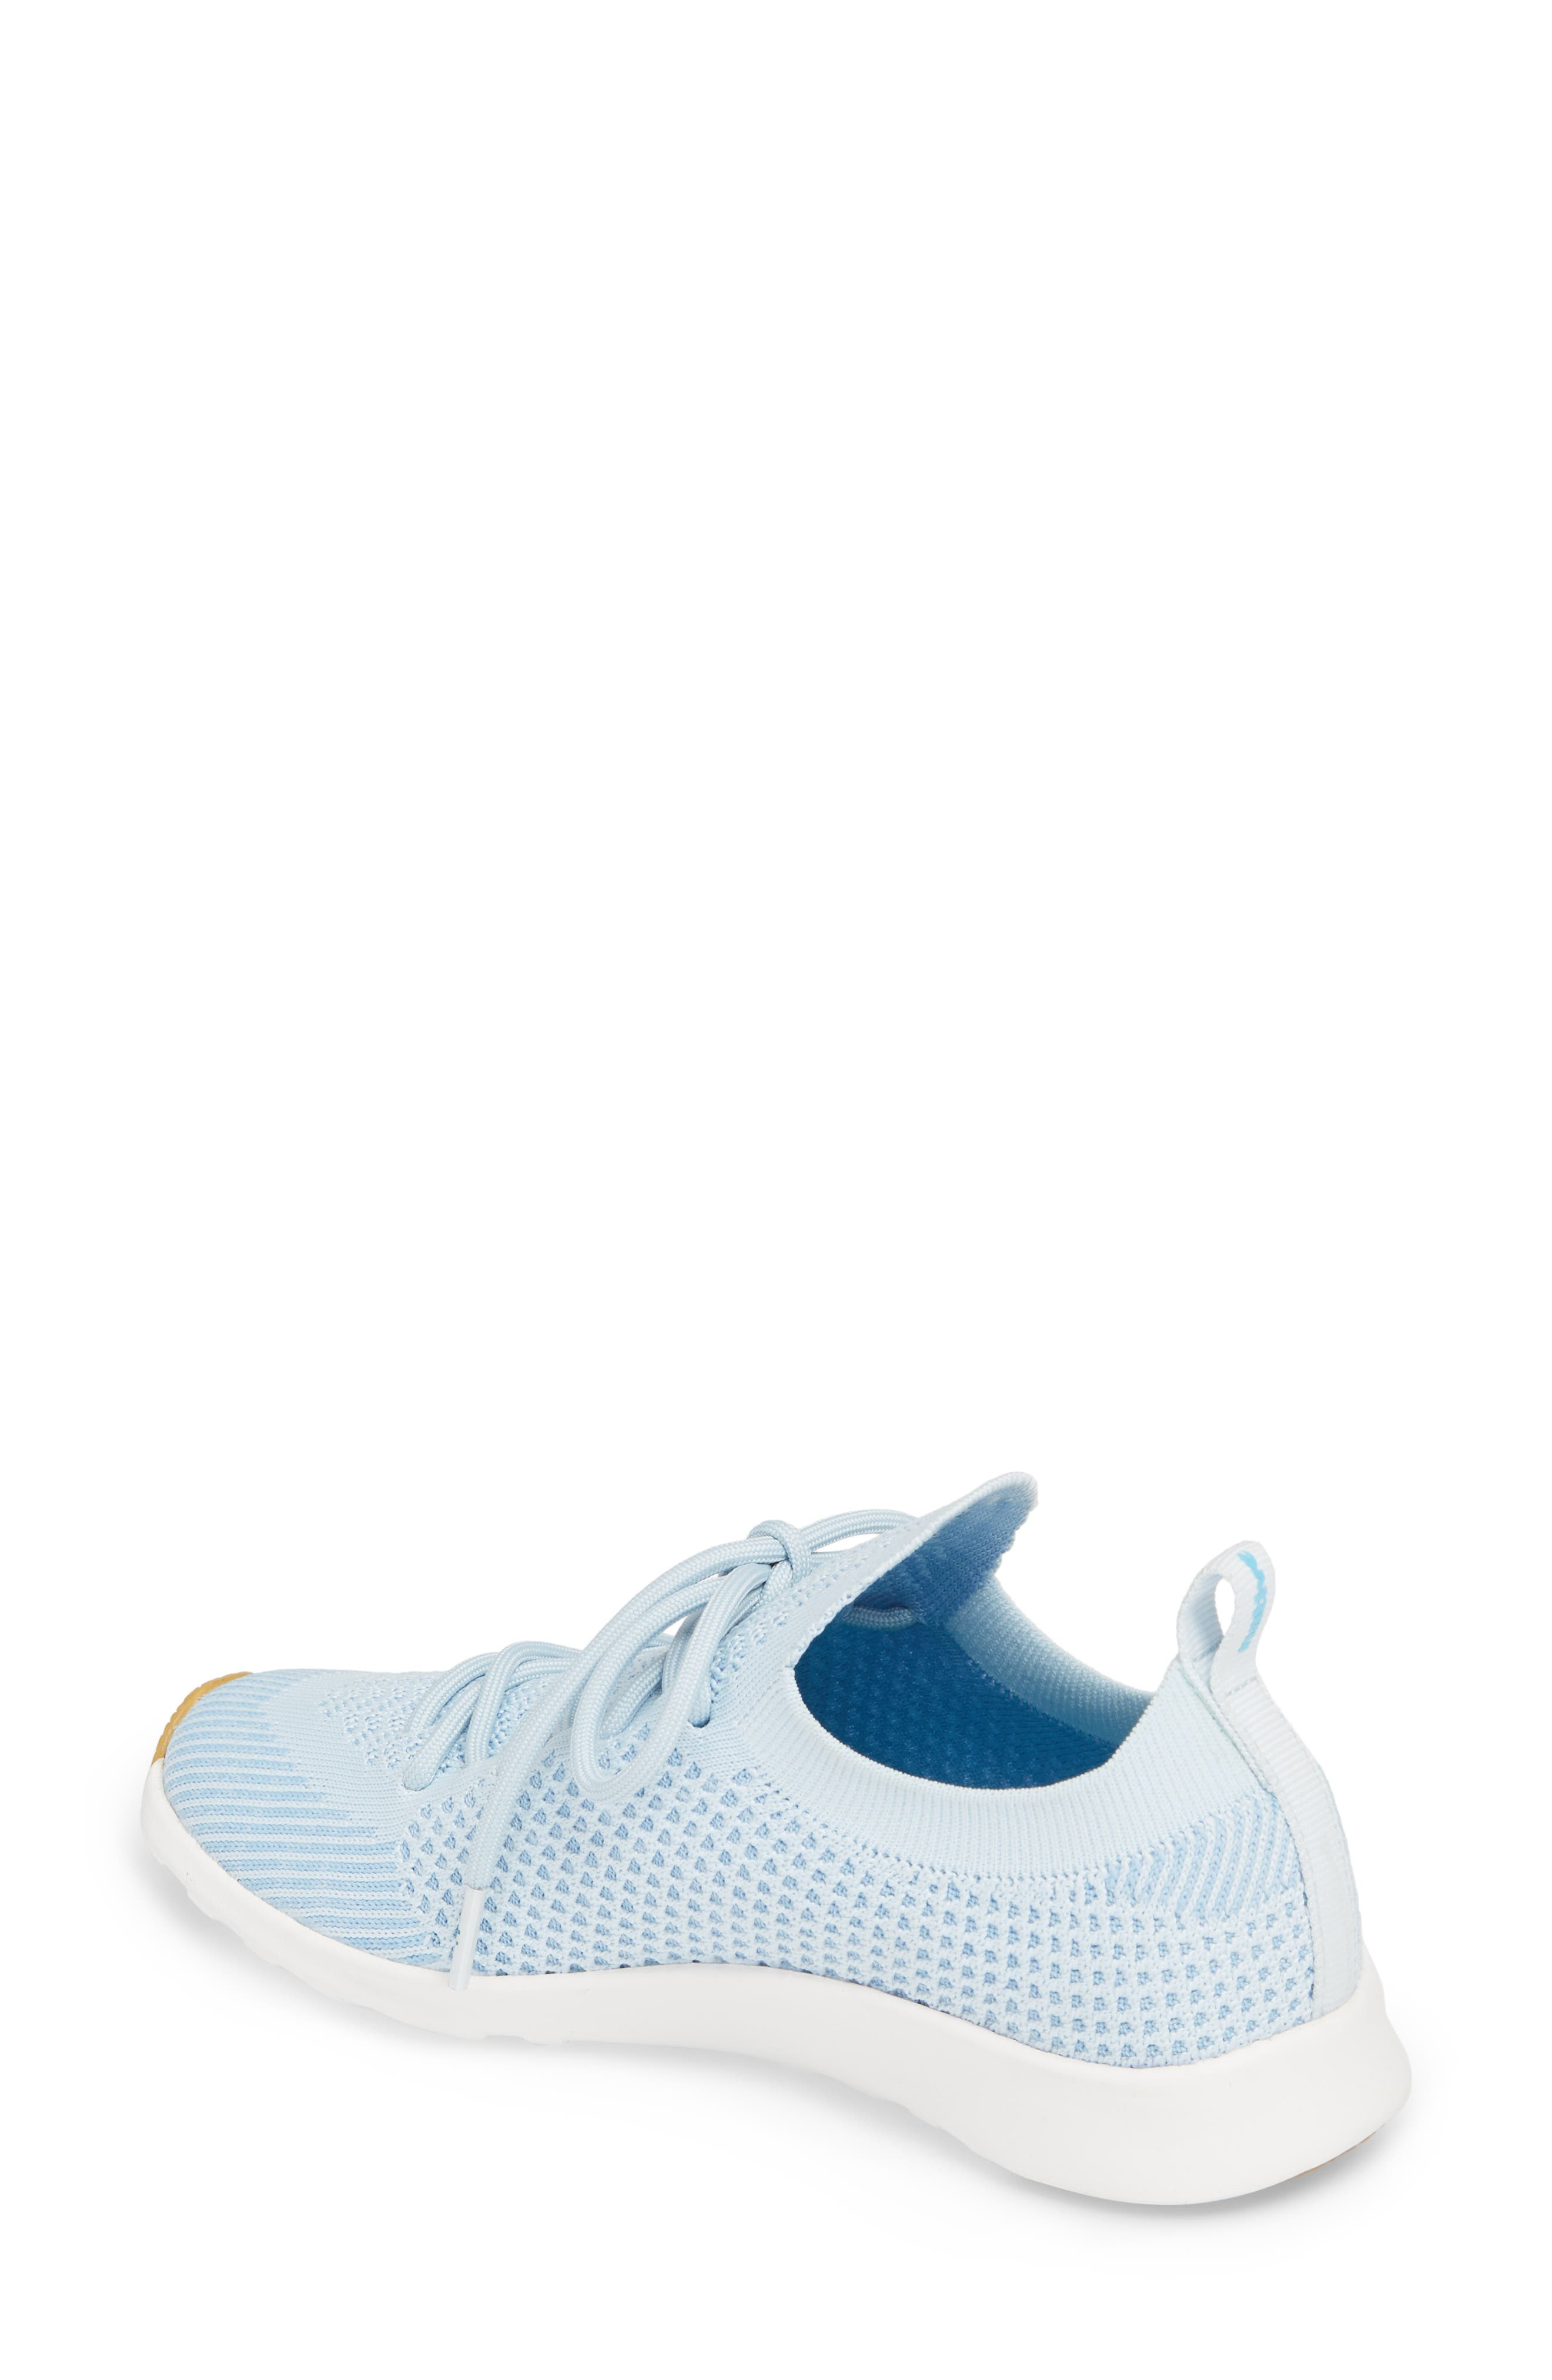 AP Mercury Liteknit Sneaker,                             Alternate thumbnail 2, color,                             AIR BLUE/ SHELL WHITE/ NATURAL